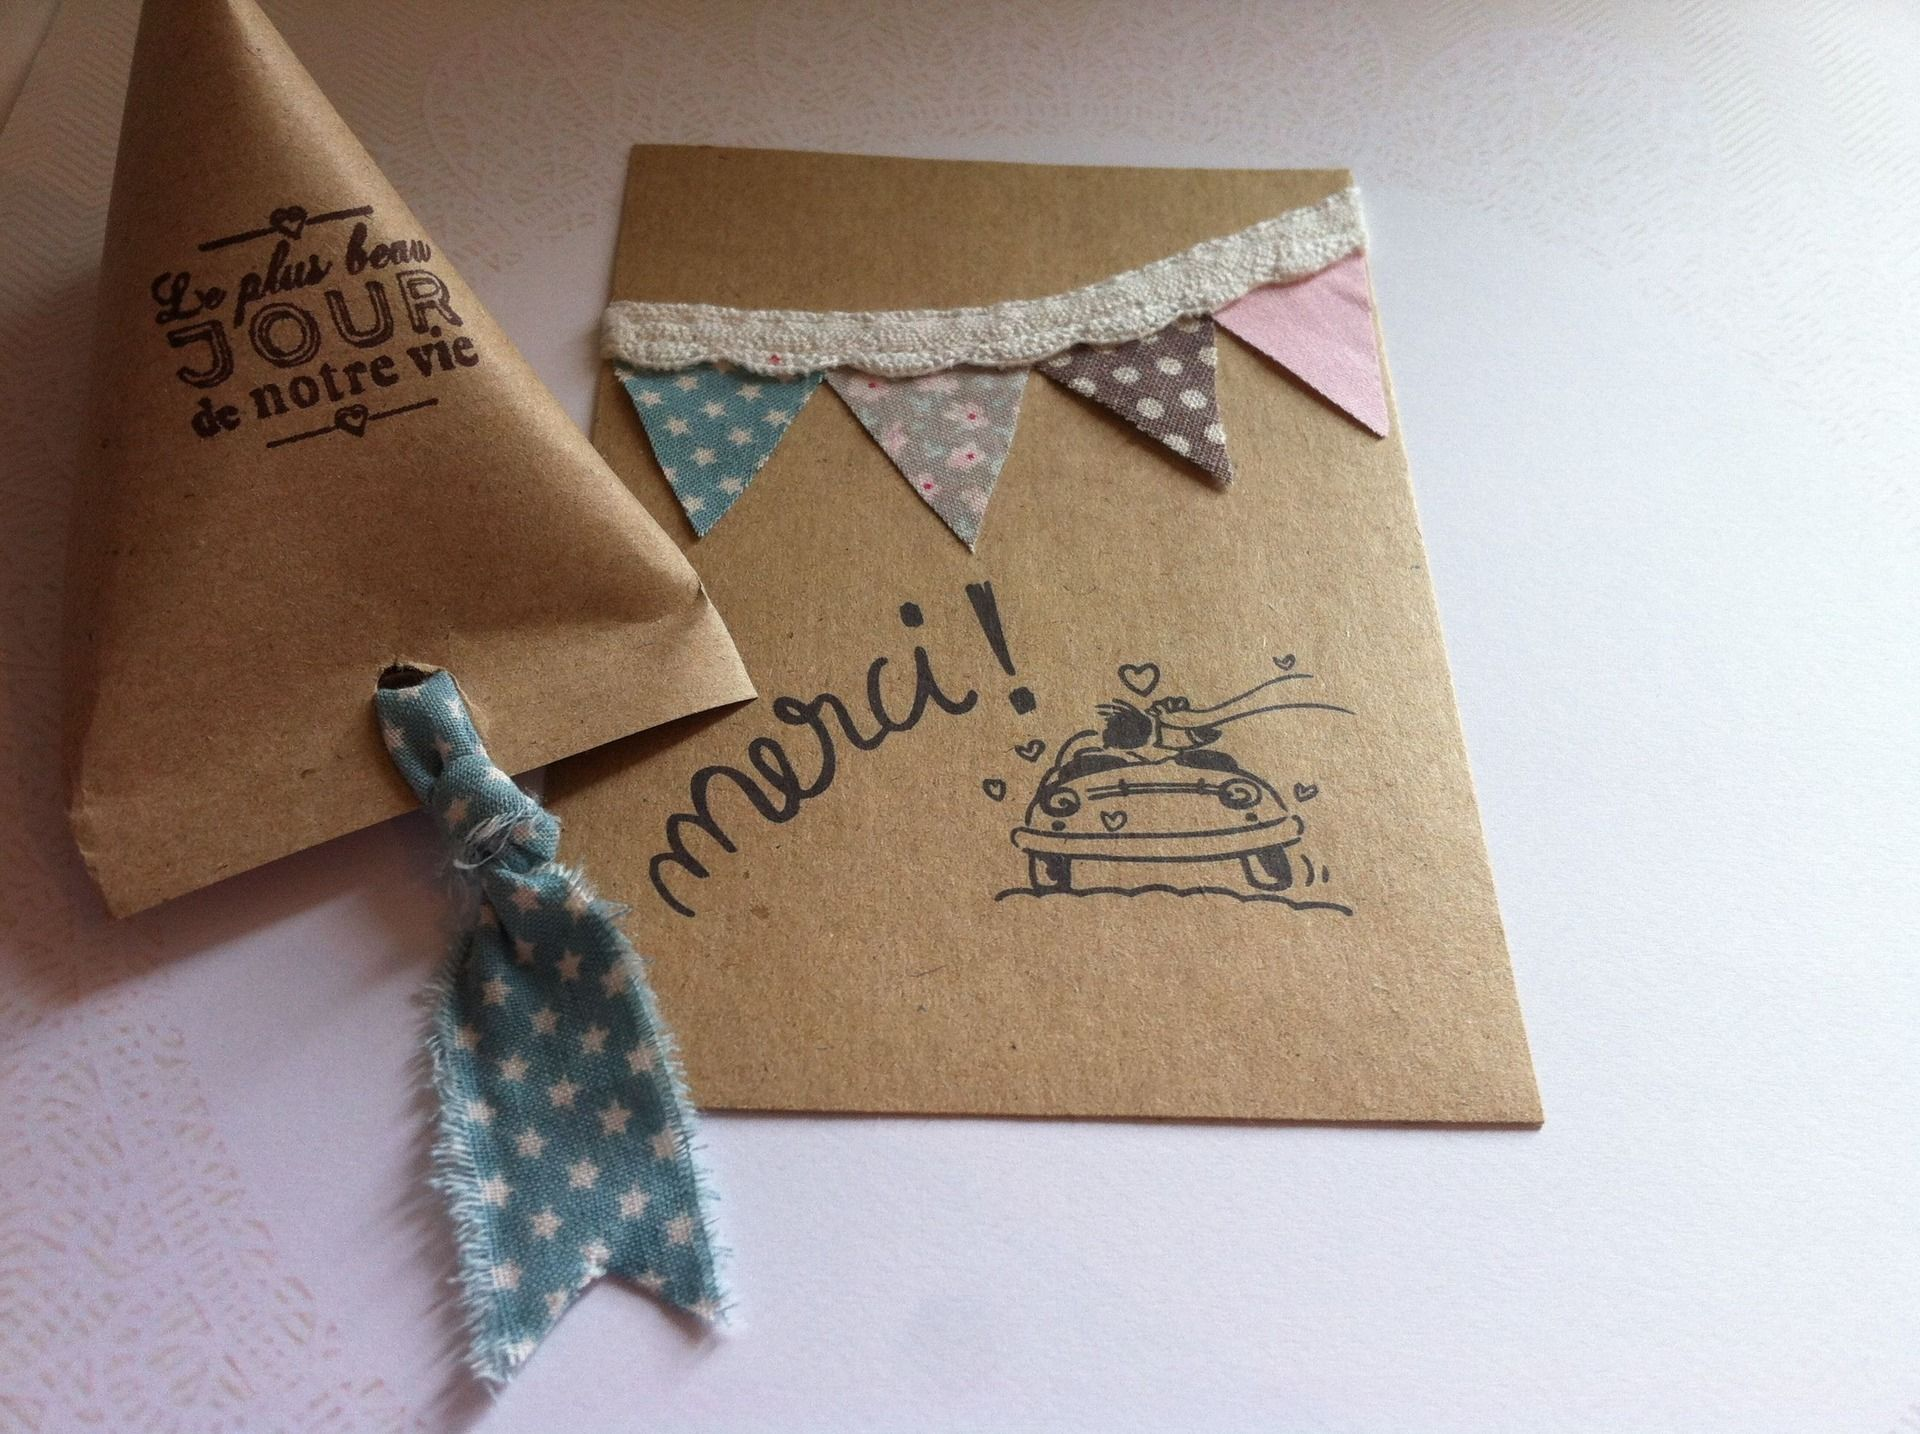 1000 images about dragees on pinterest muslin bags favor boxes and liberty - Contenant Drages Mariage Originaux